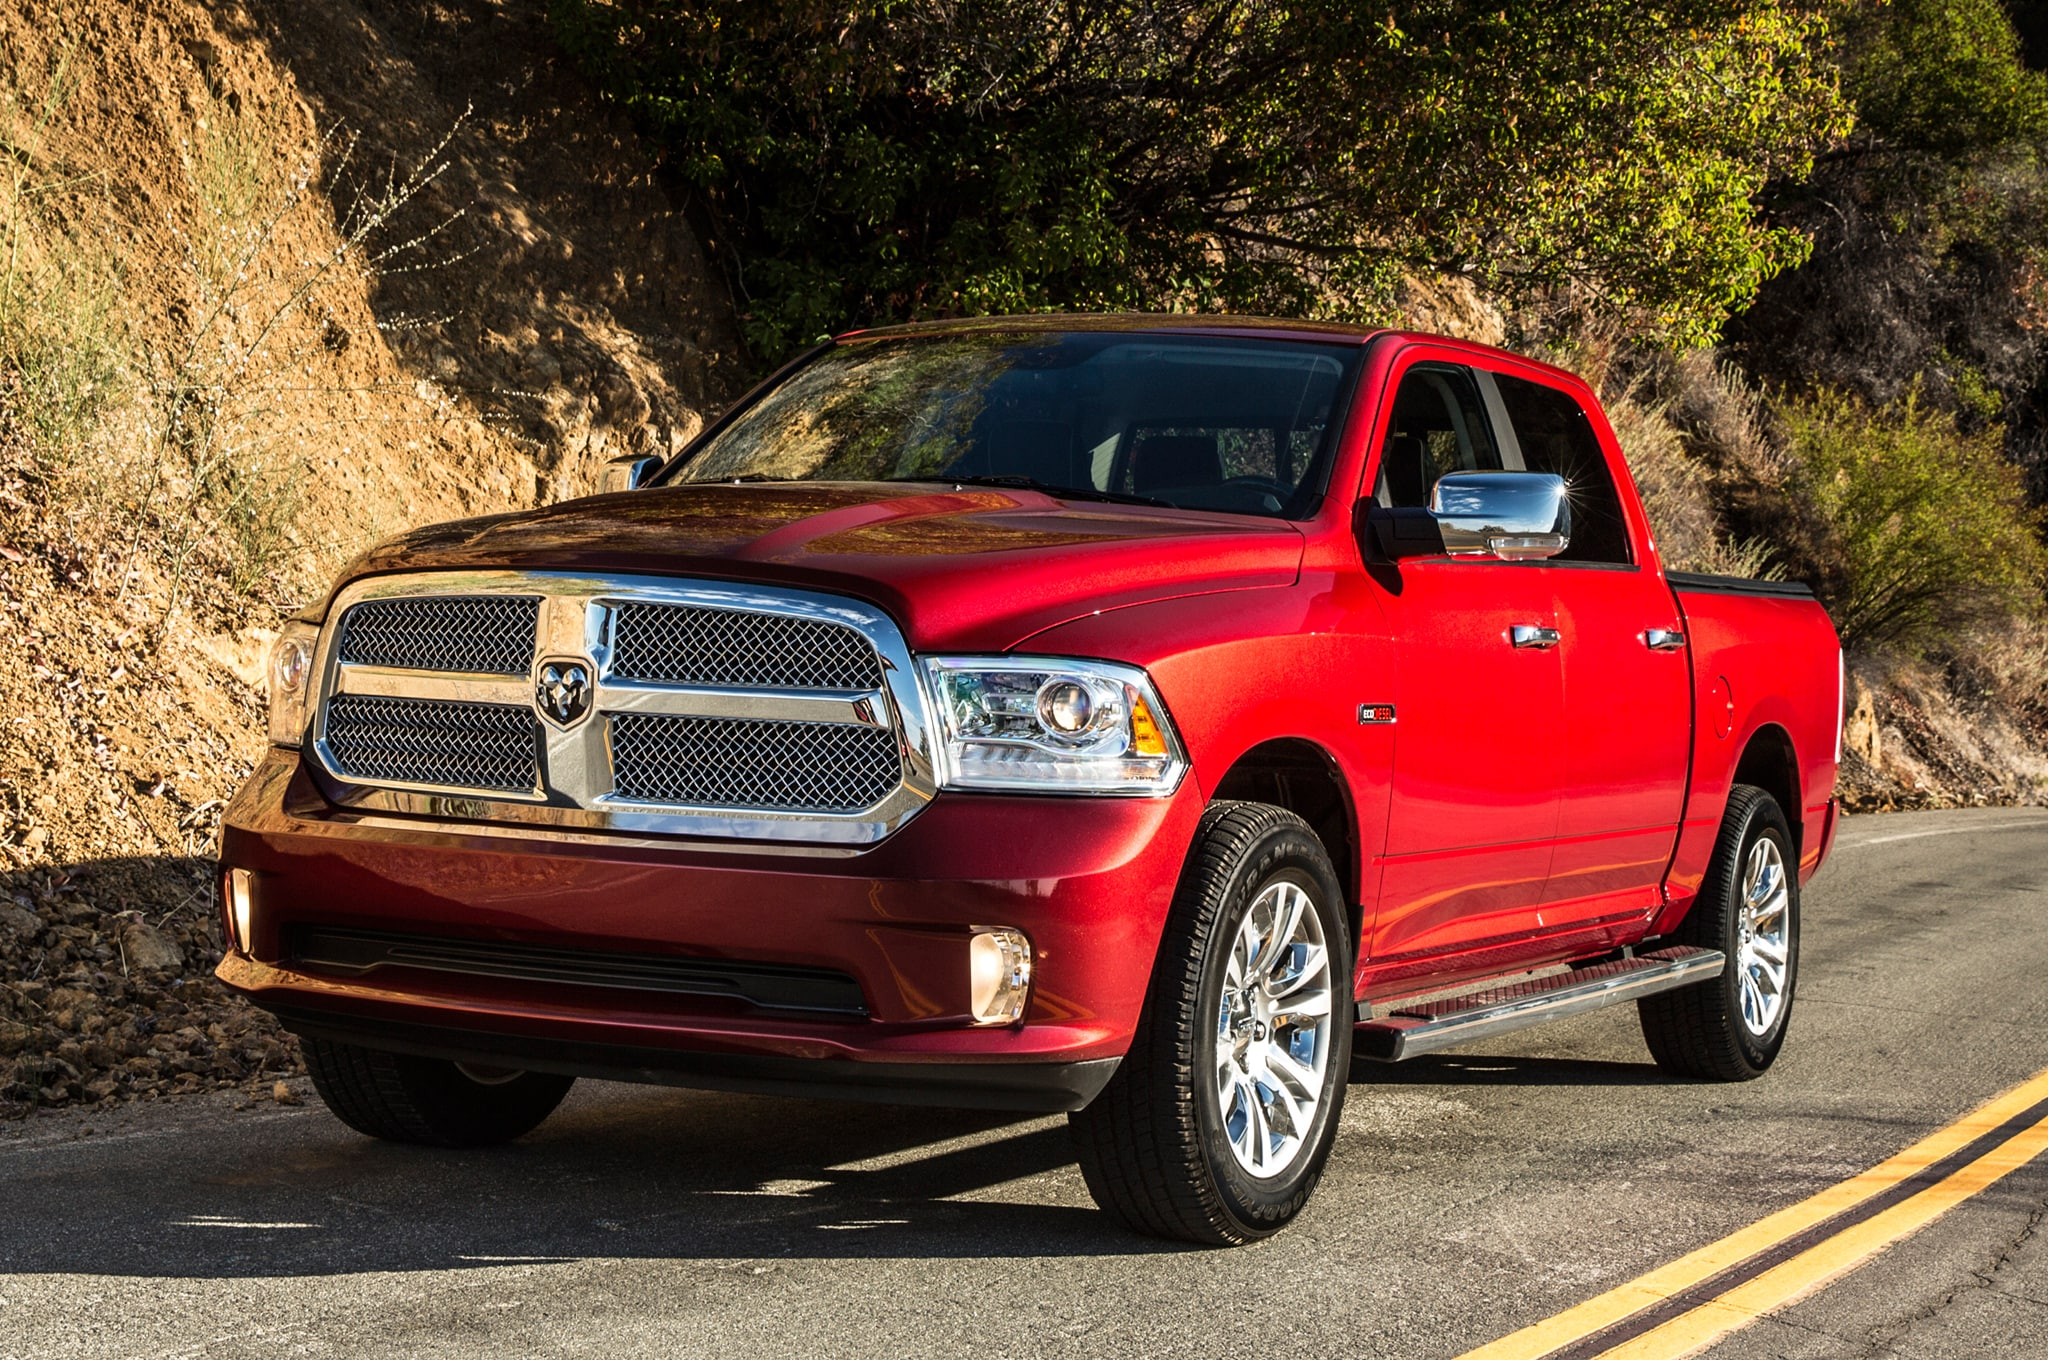 Lovely 2015 Ram EcoDiesel For Sale In San Antonio